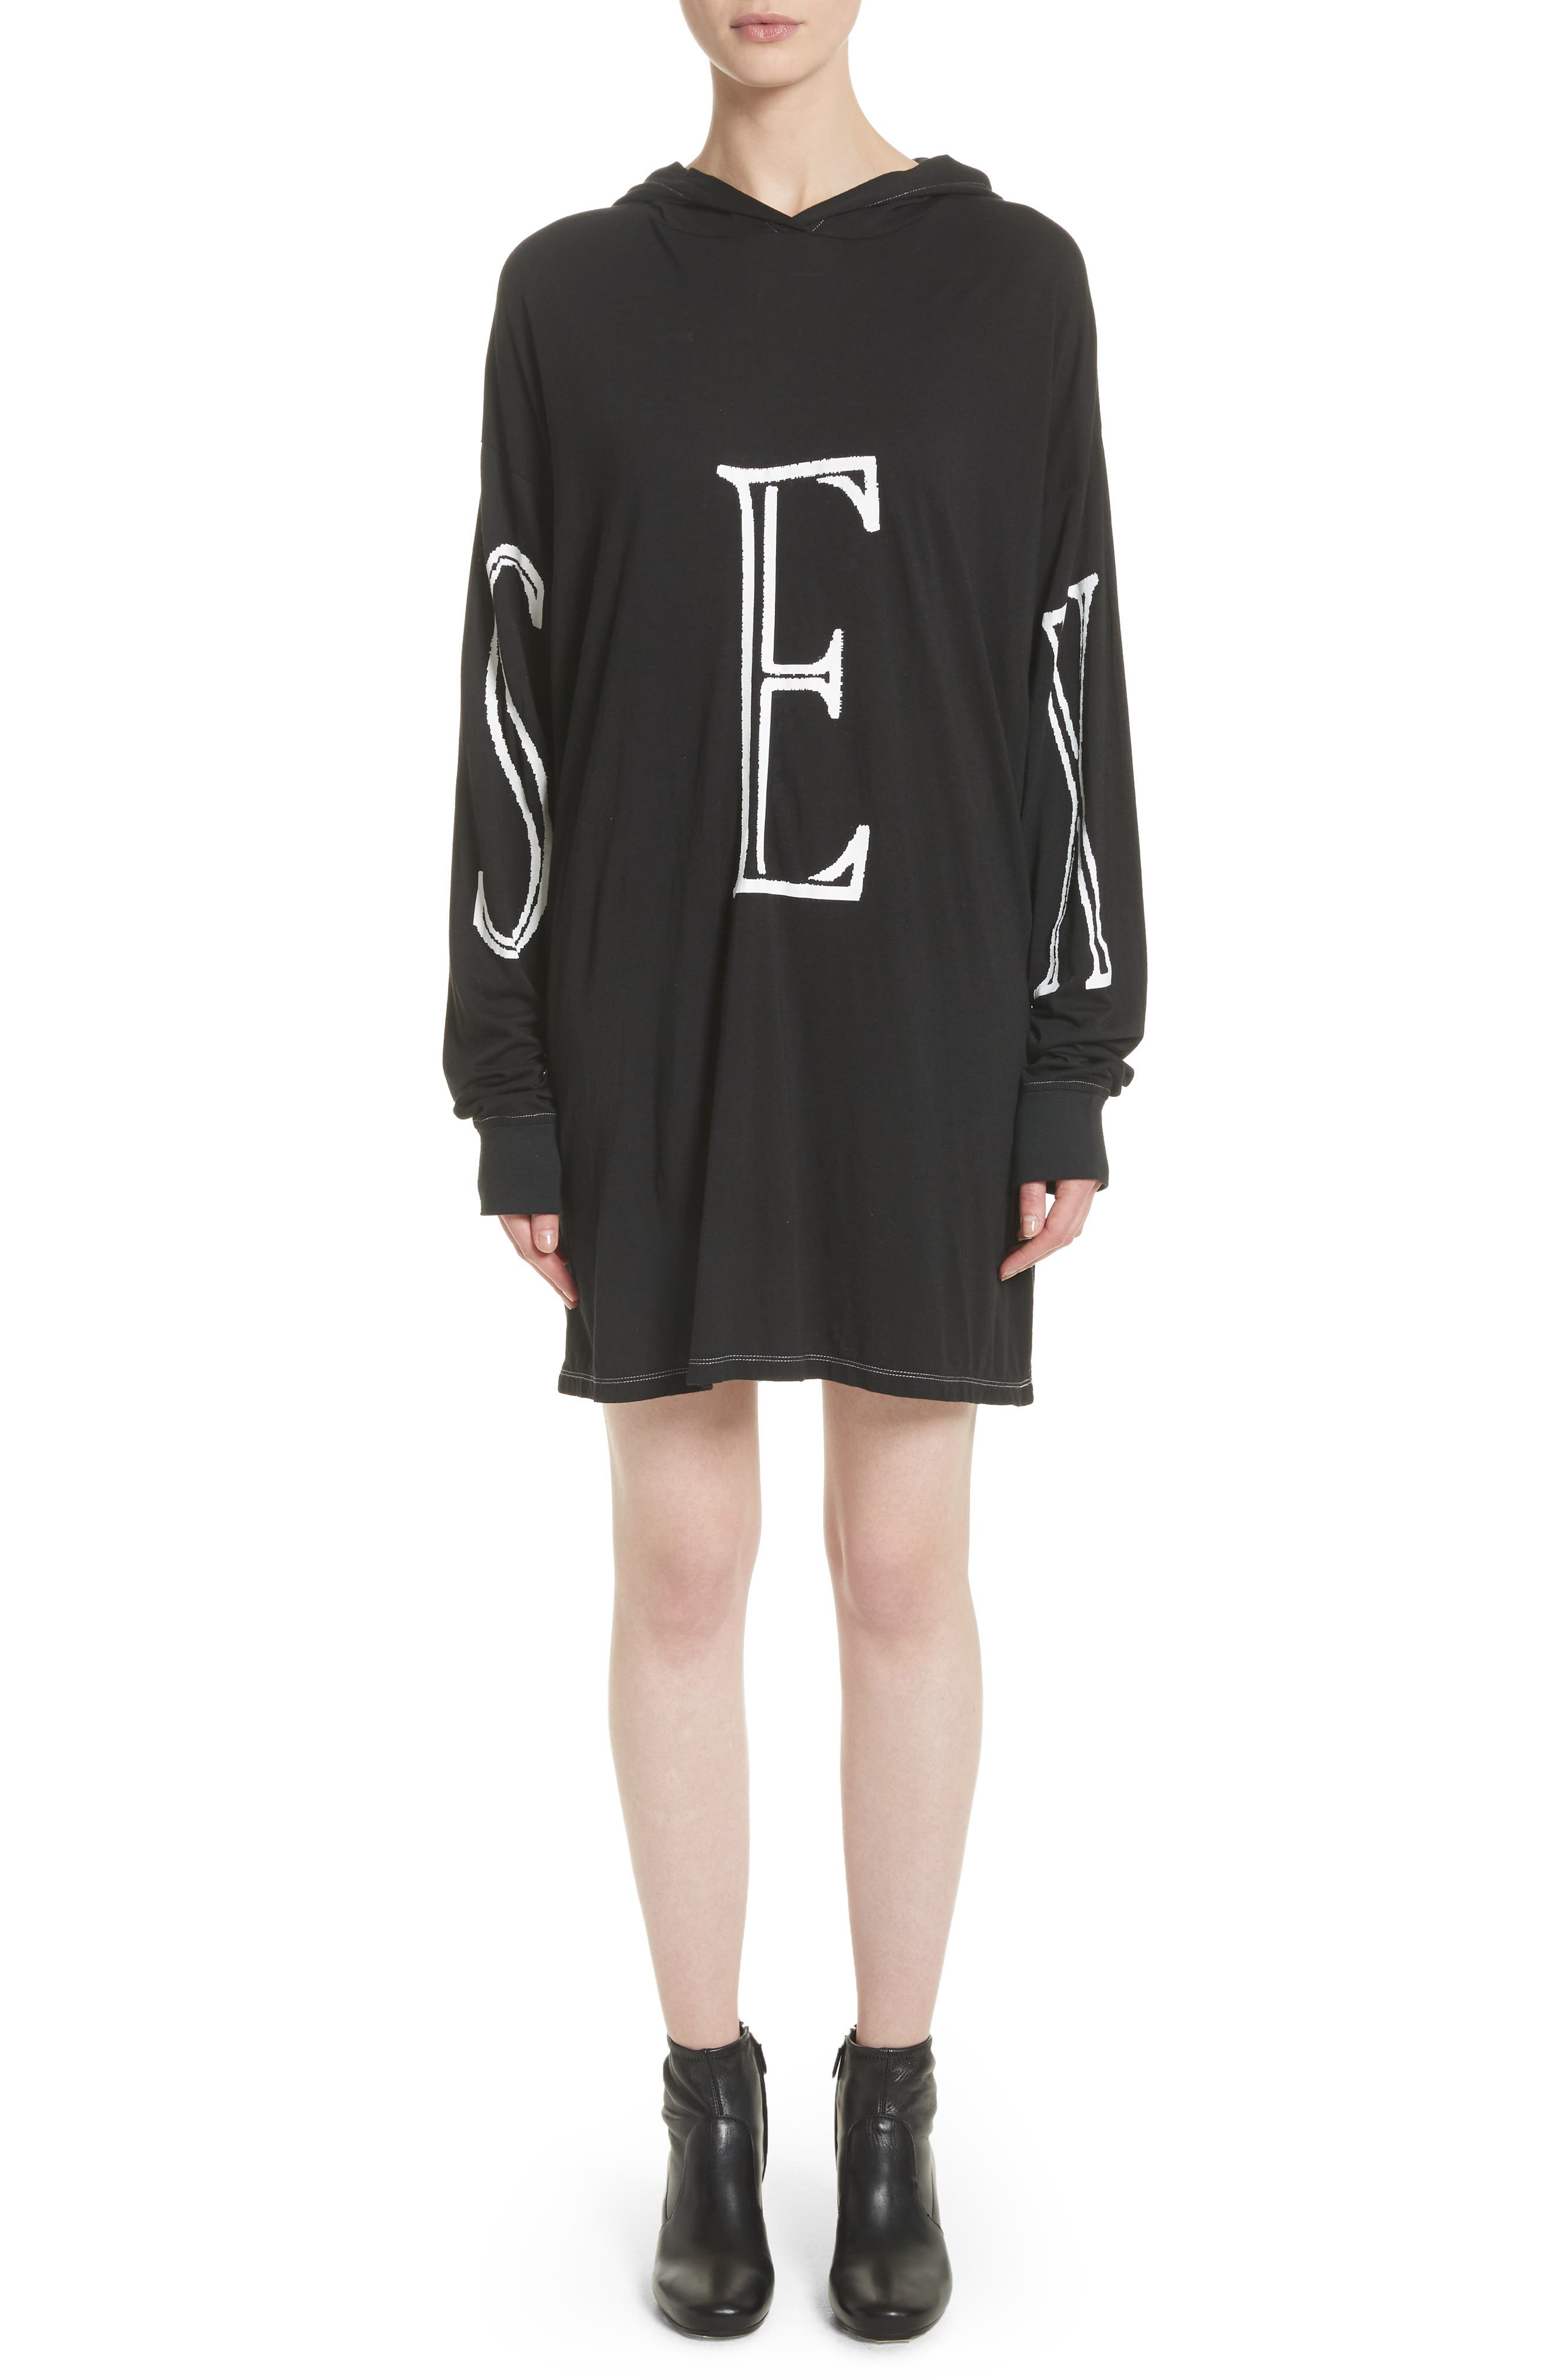 Ashley Williams SEX HOODIE T-SHIRT DRESS